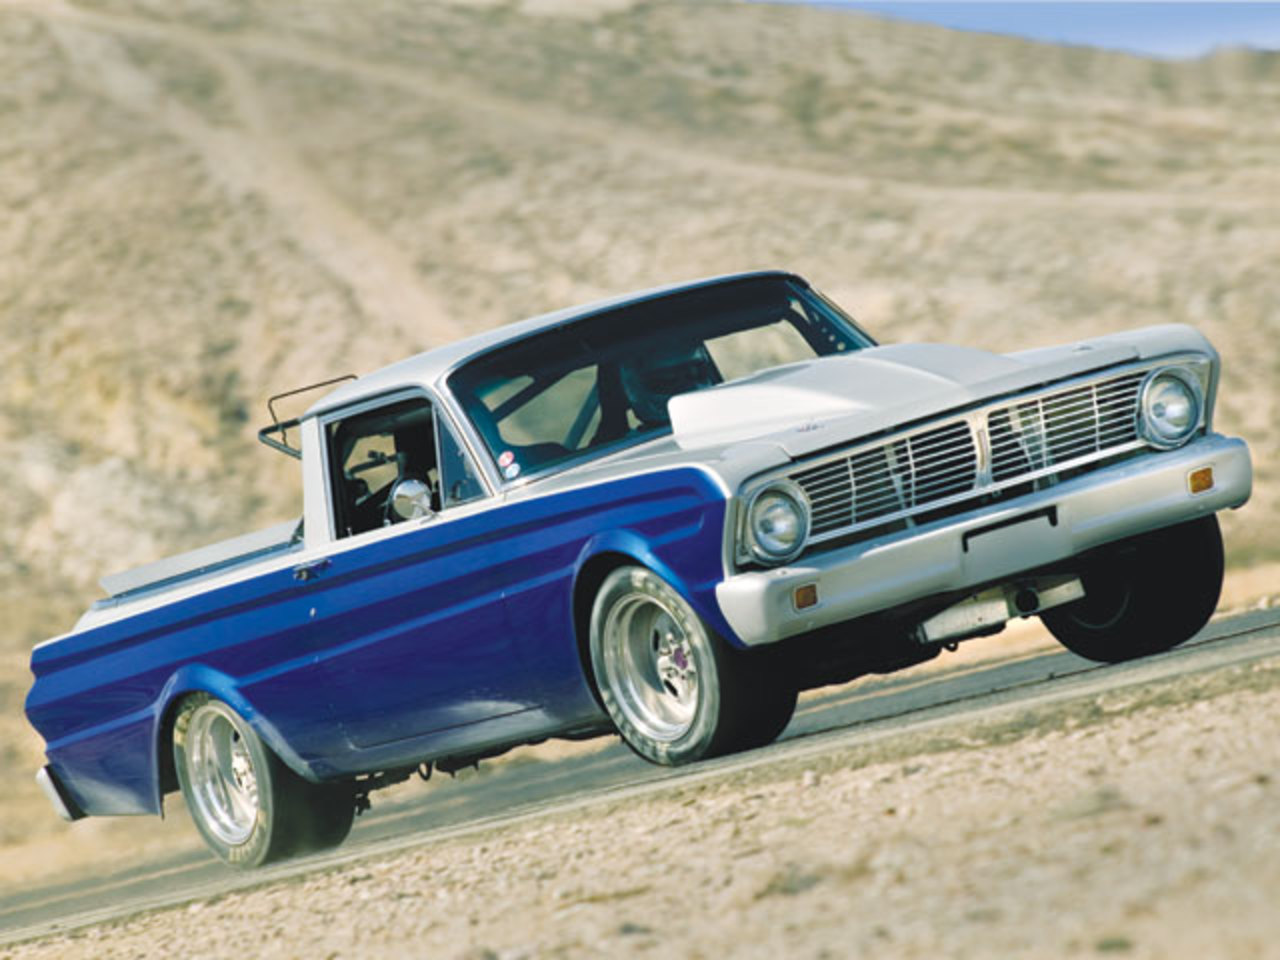 Ford Ranchero - cars catalog, specs, features, photos, videos, review,